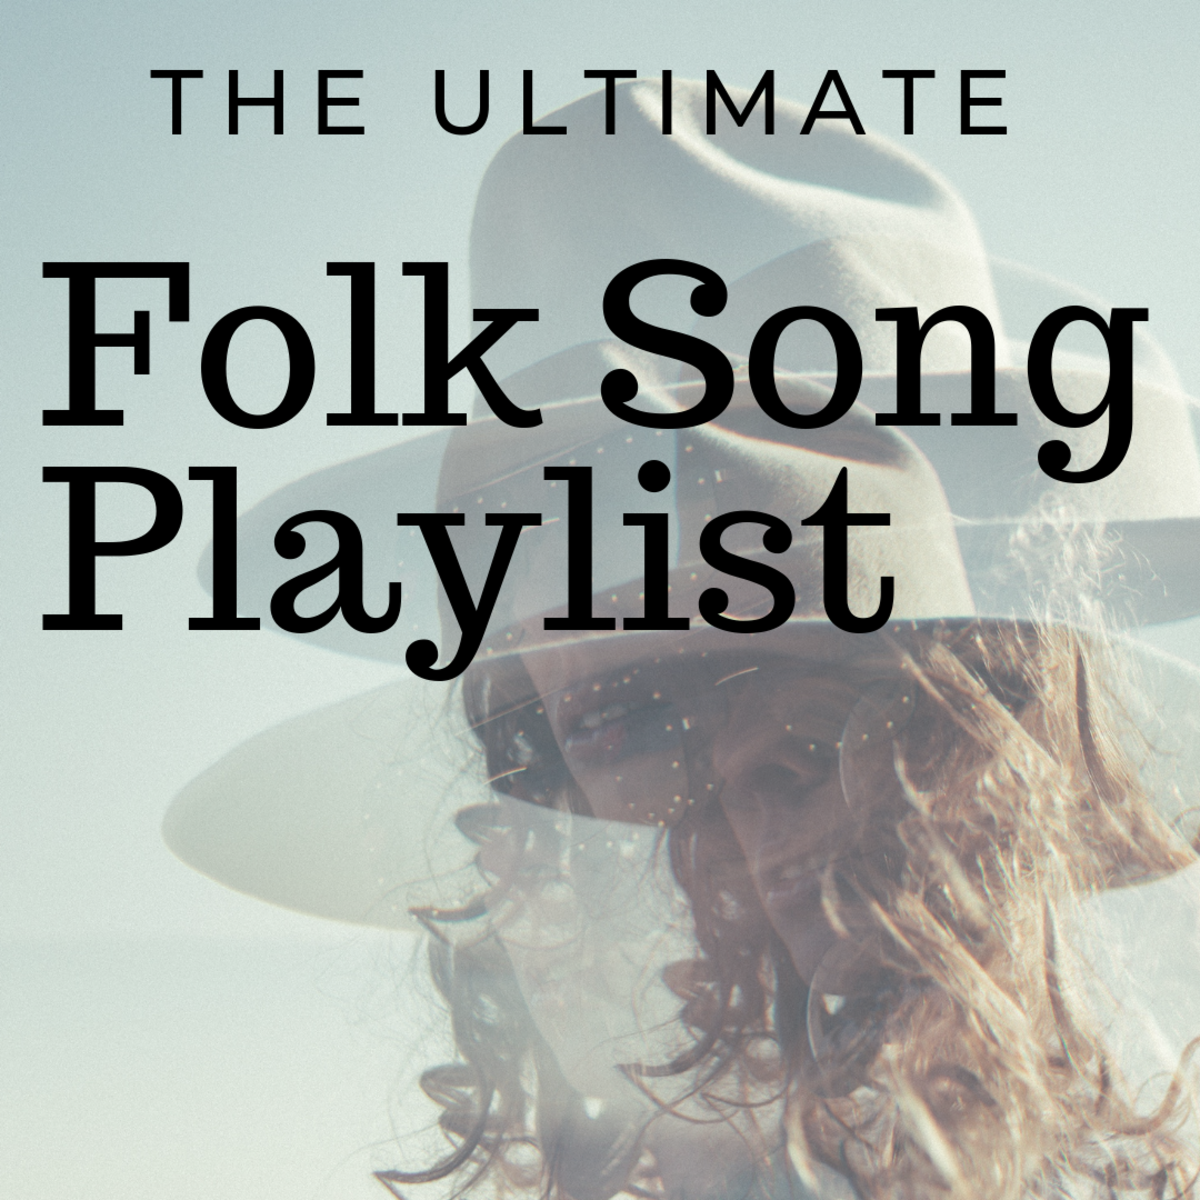 The Ultimate Folk Song Playlist